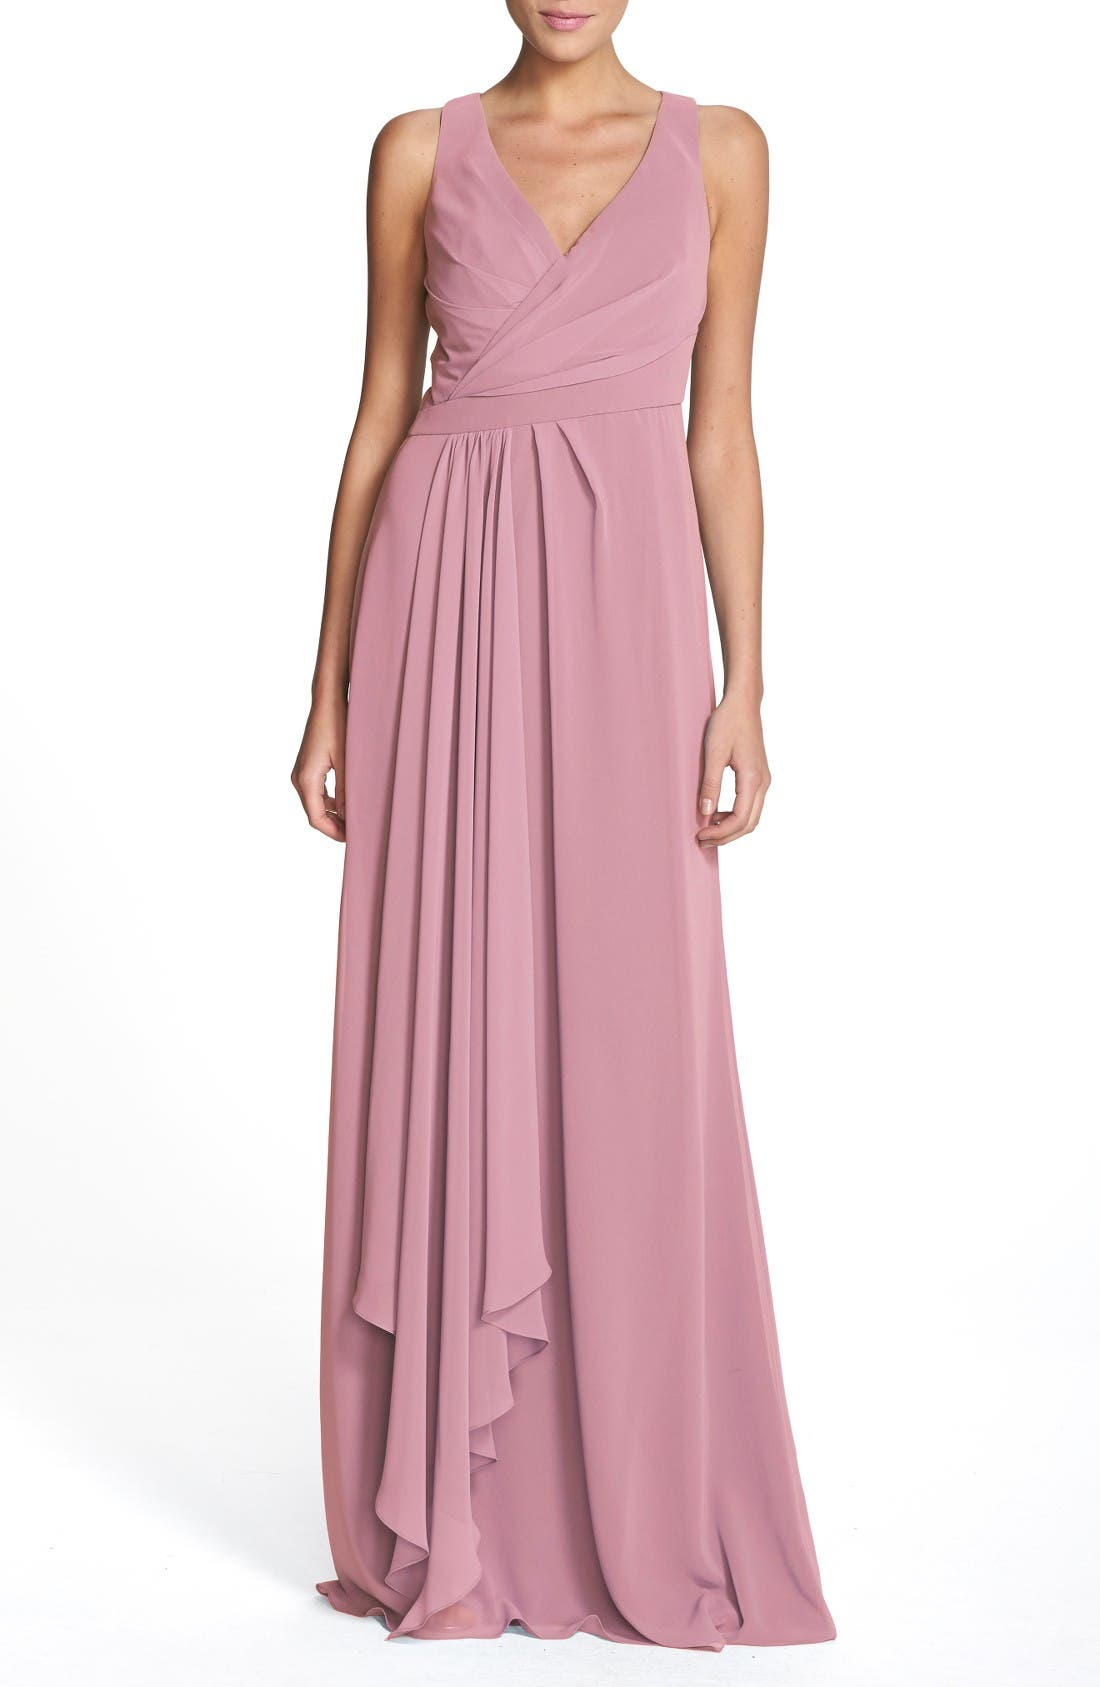 Main Image - Monique Lhuillier Bridesmaids Sleeveless V-Neck Chiffon Gown (Nordstrom Exclusive)